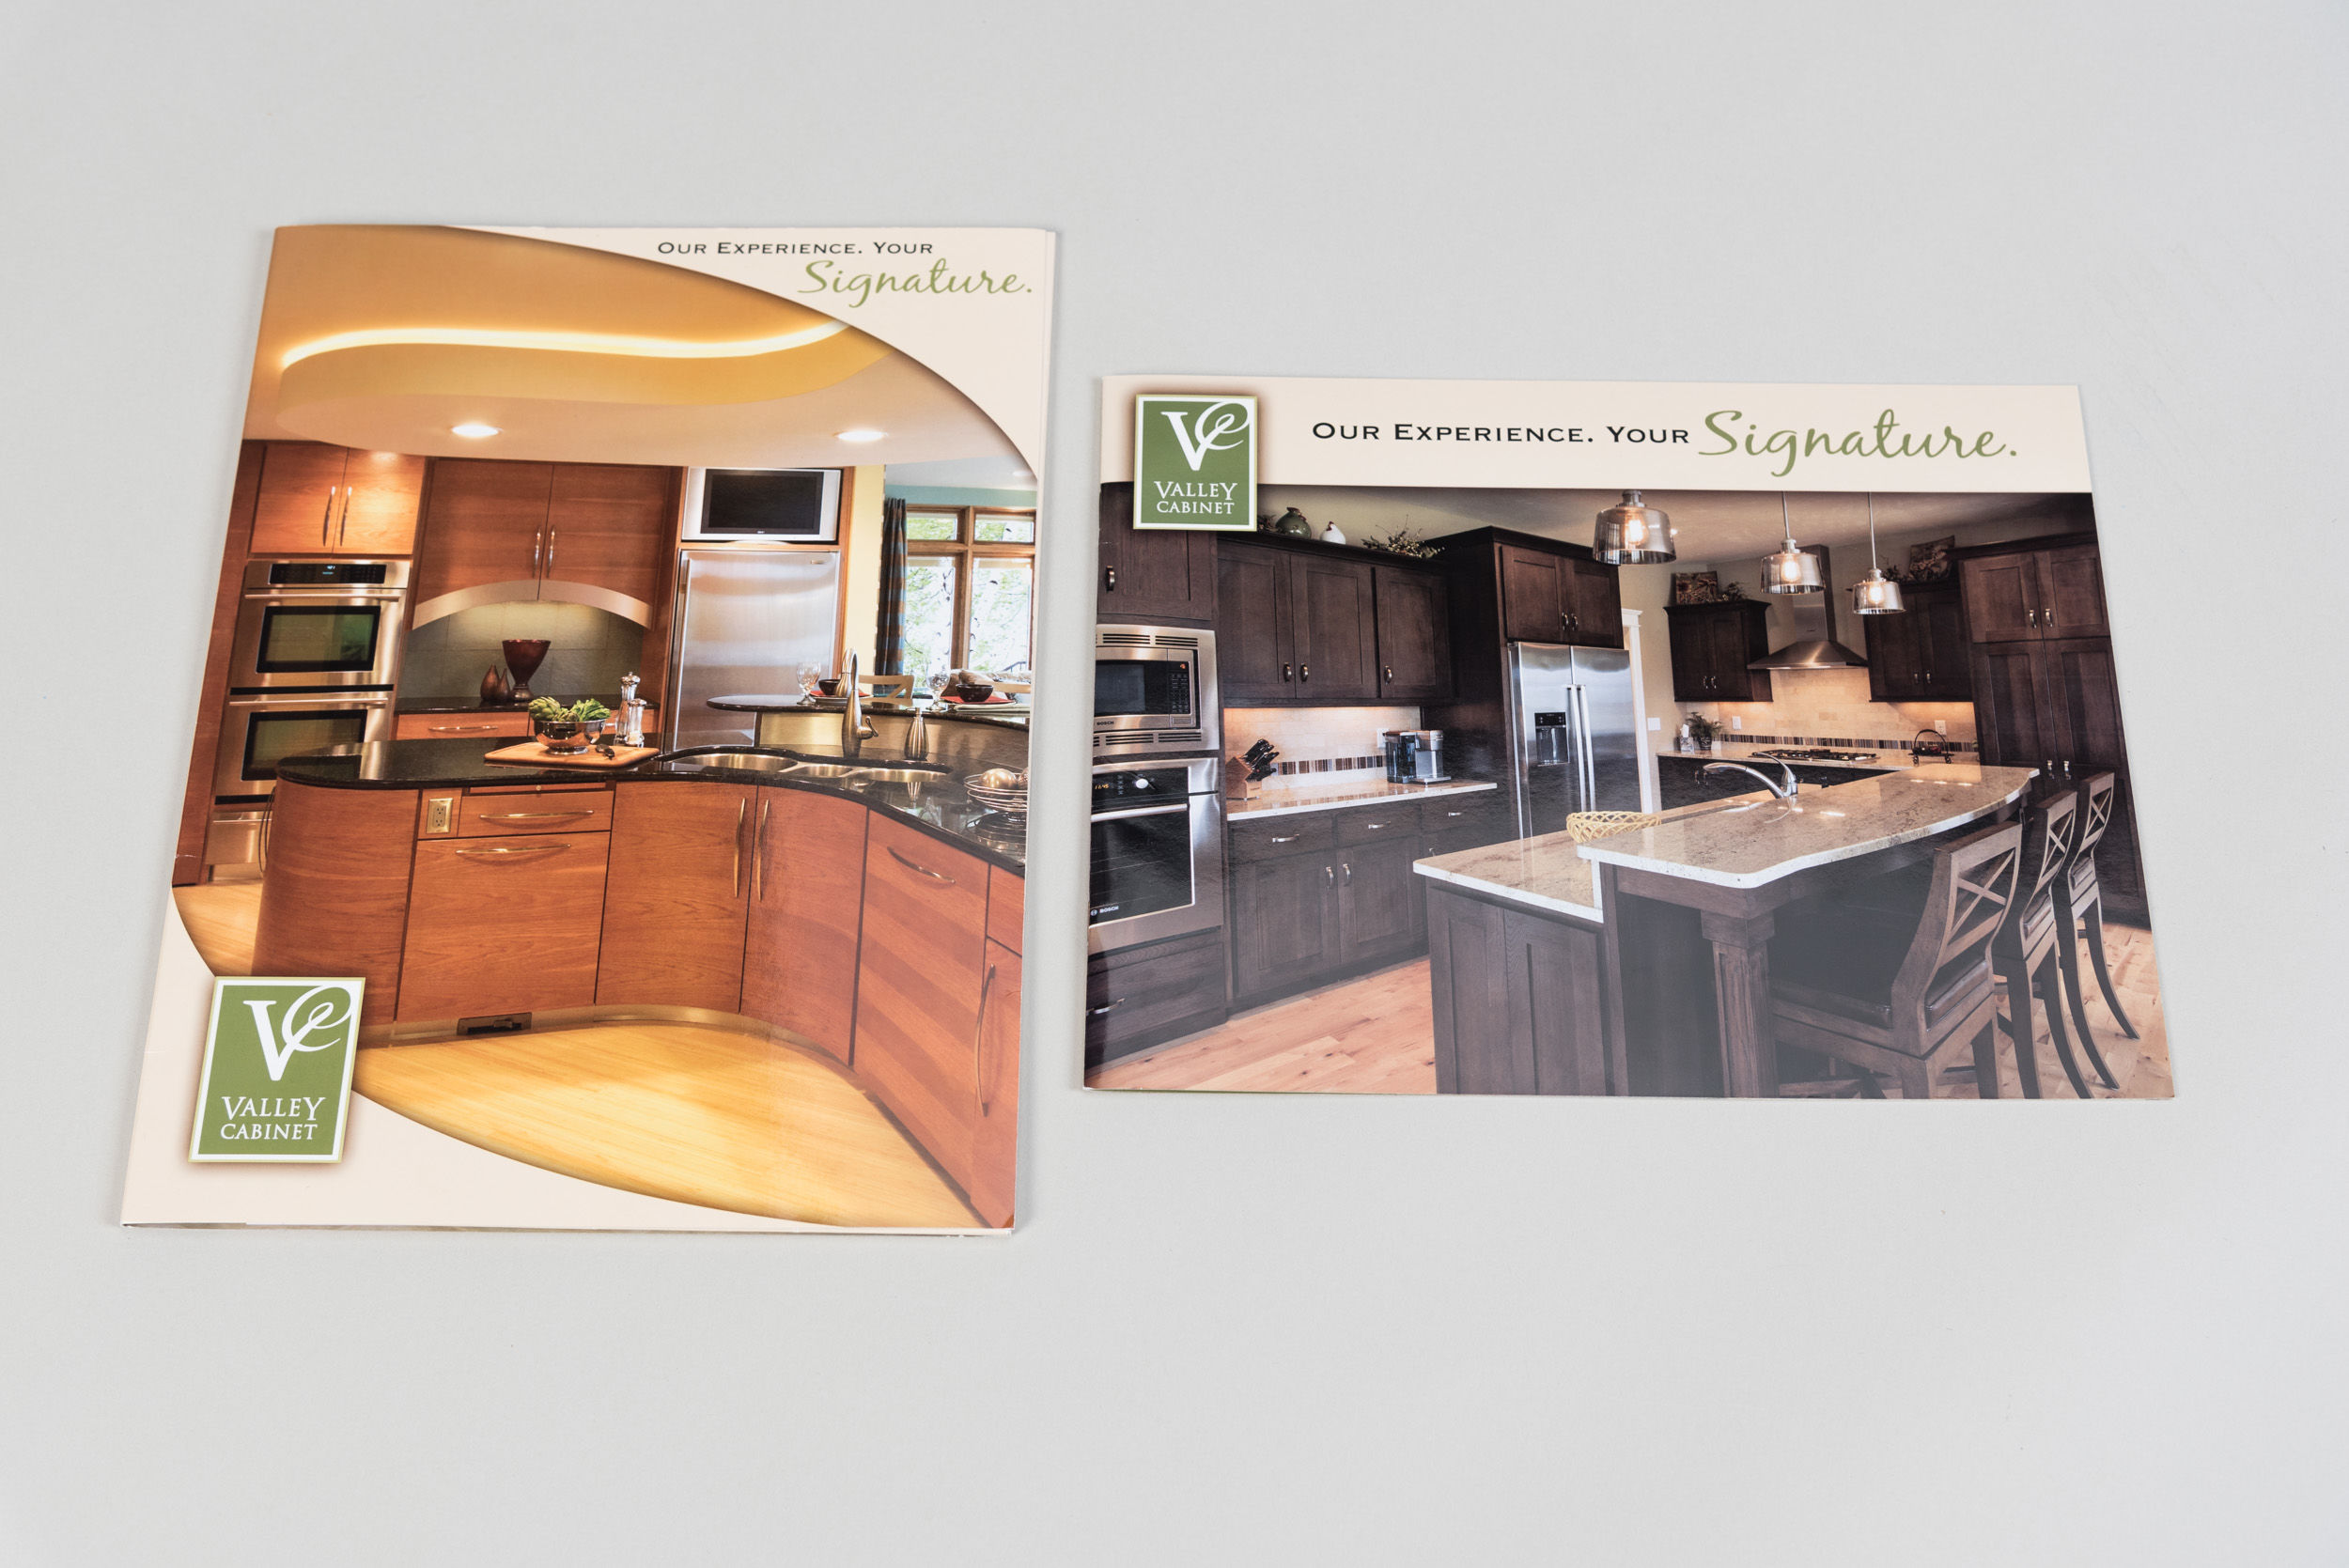 Valley Cabinet Brochure Side by Side